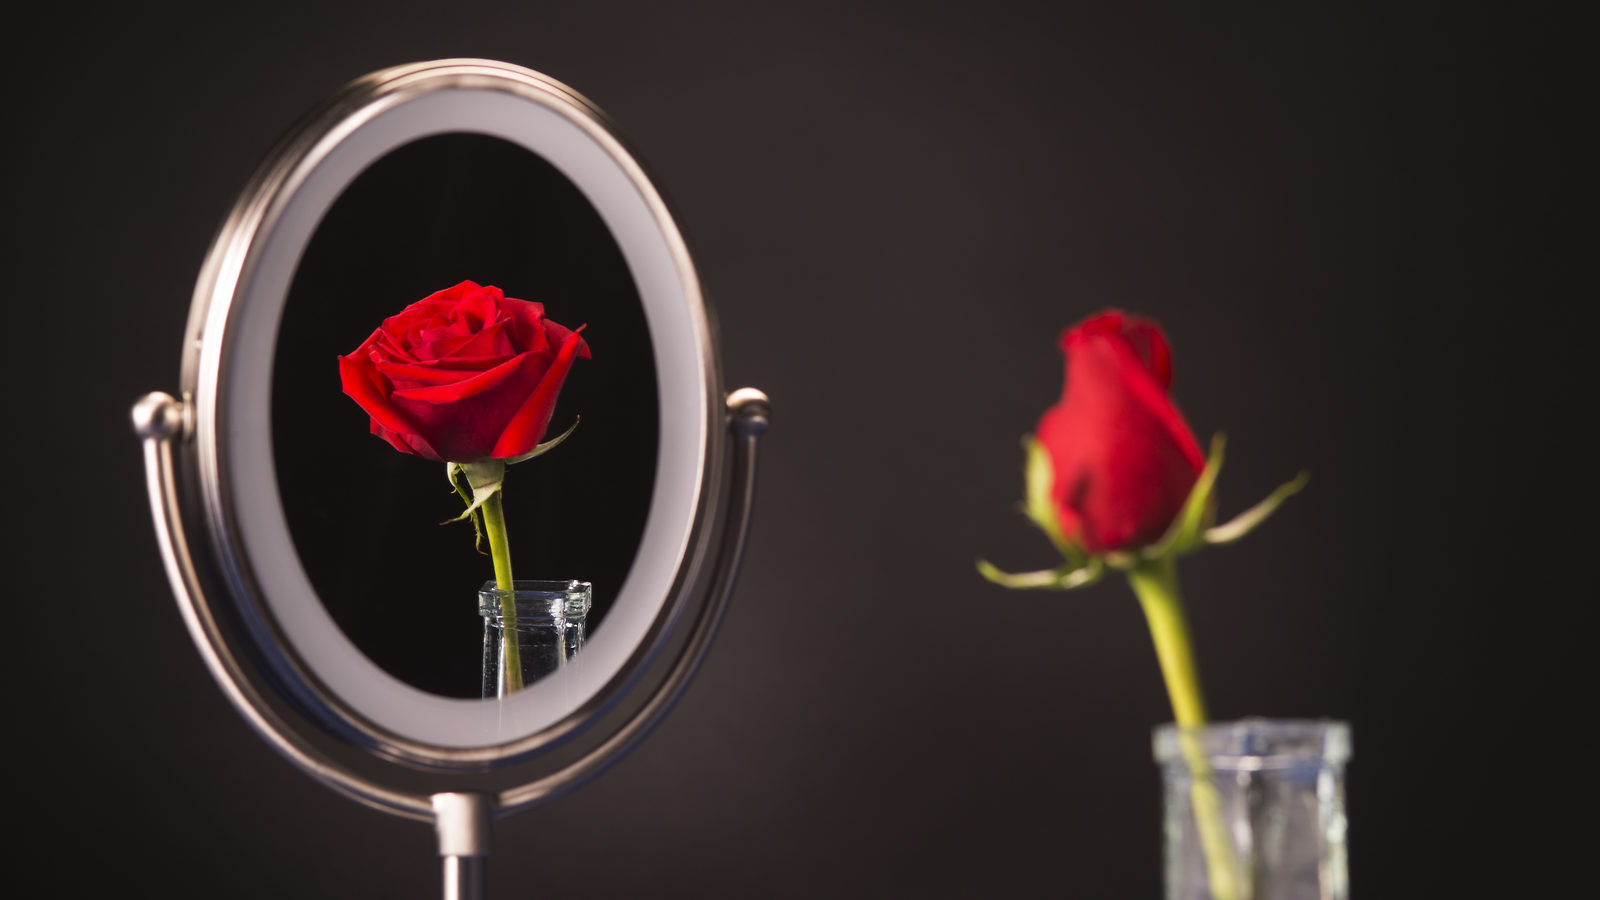 Photo of closed rose in mirror it is open